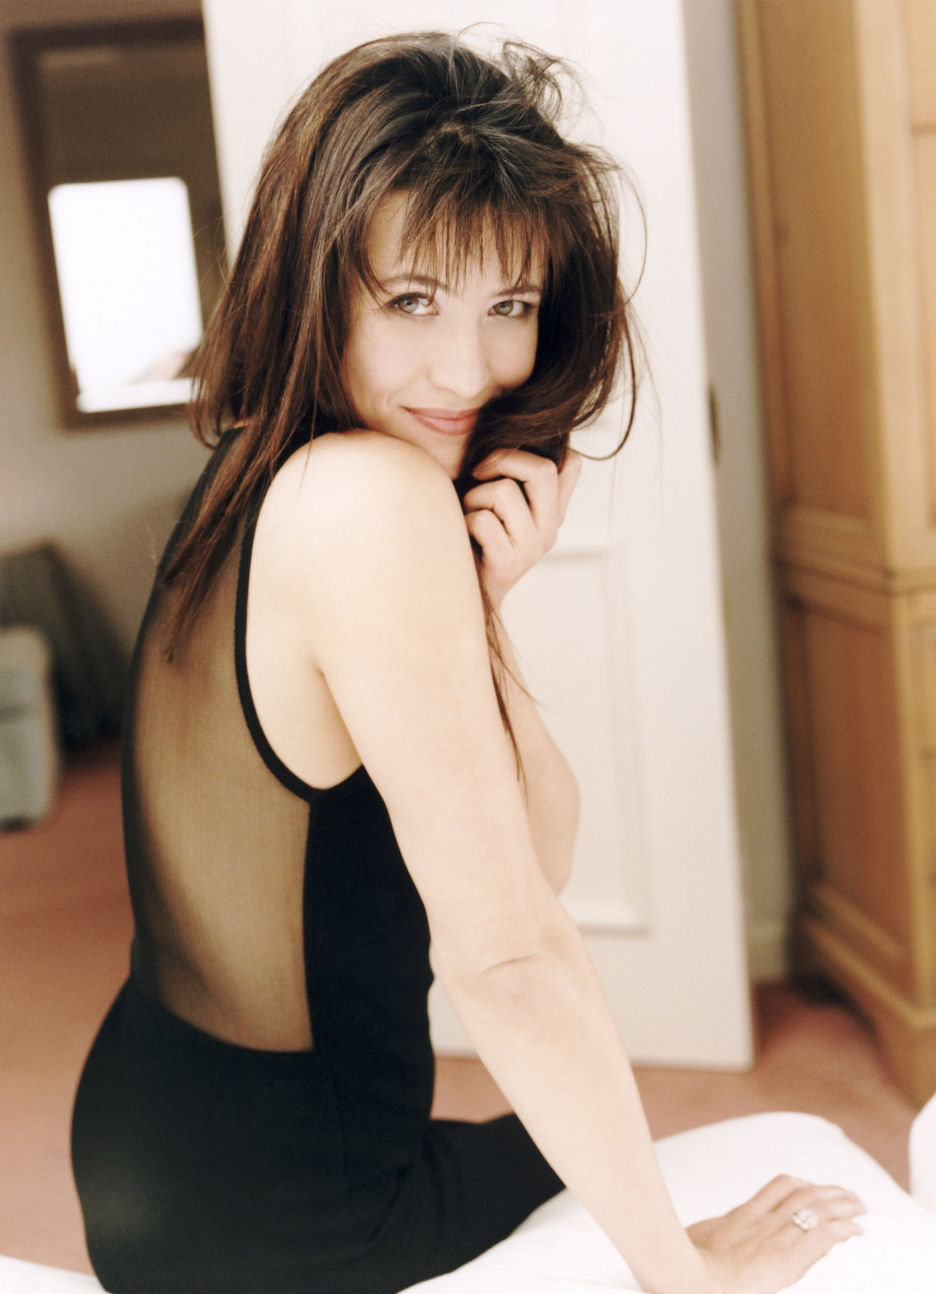 a-guide-to-cool-sophie-marceau-folkr-23